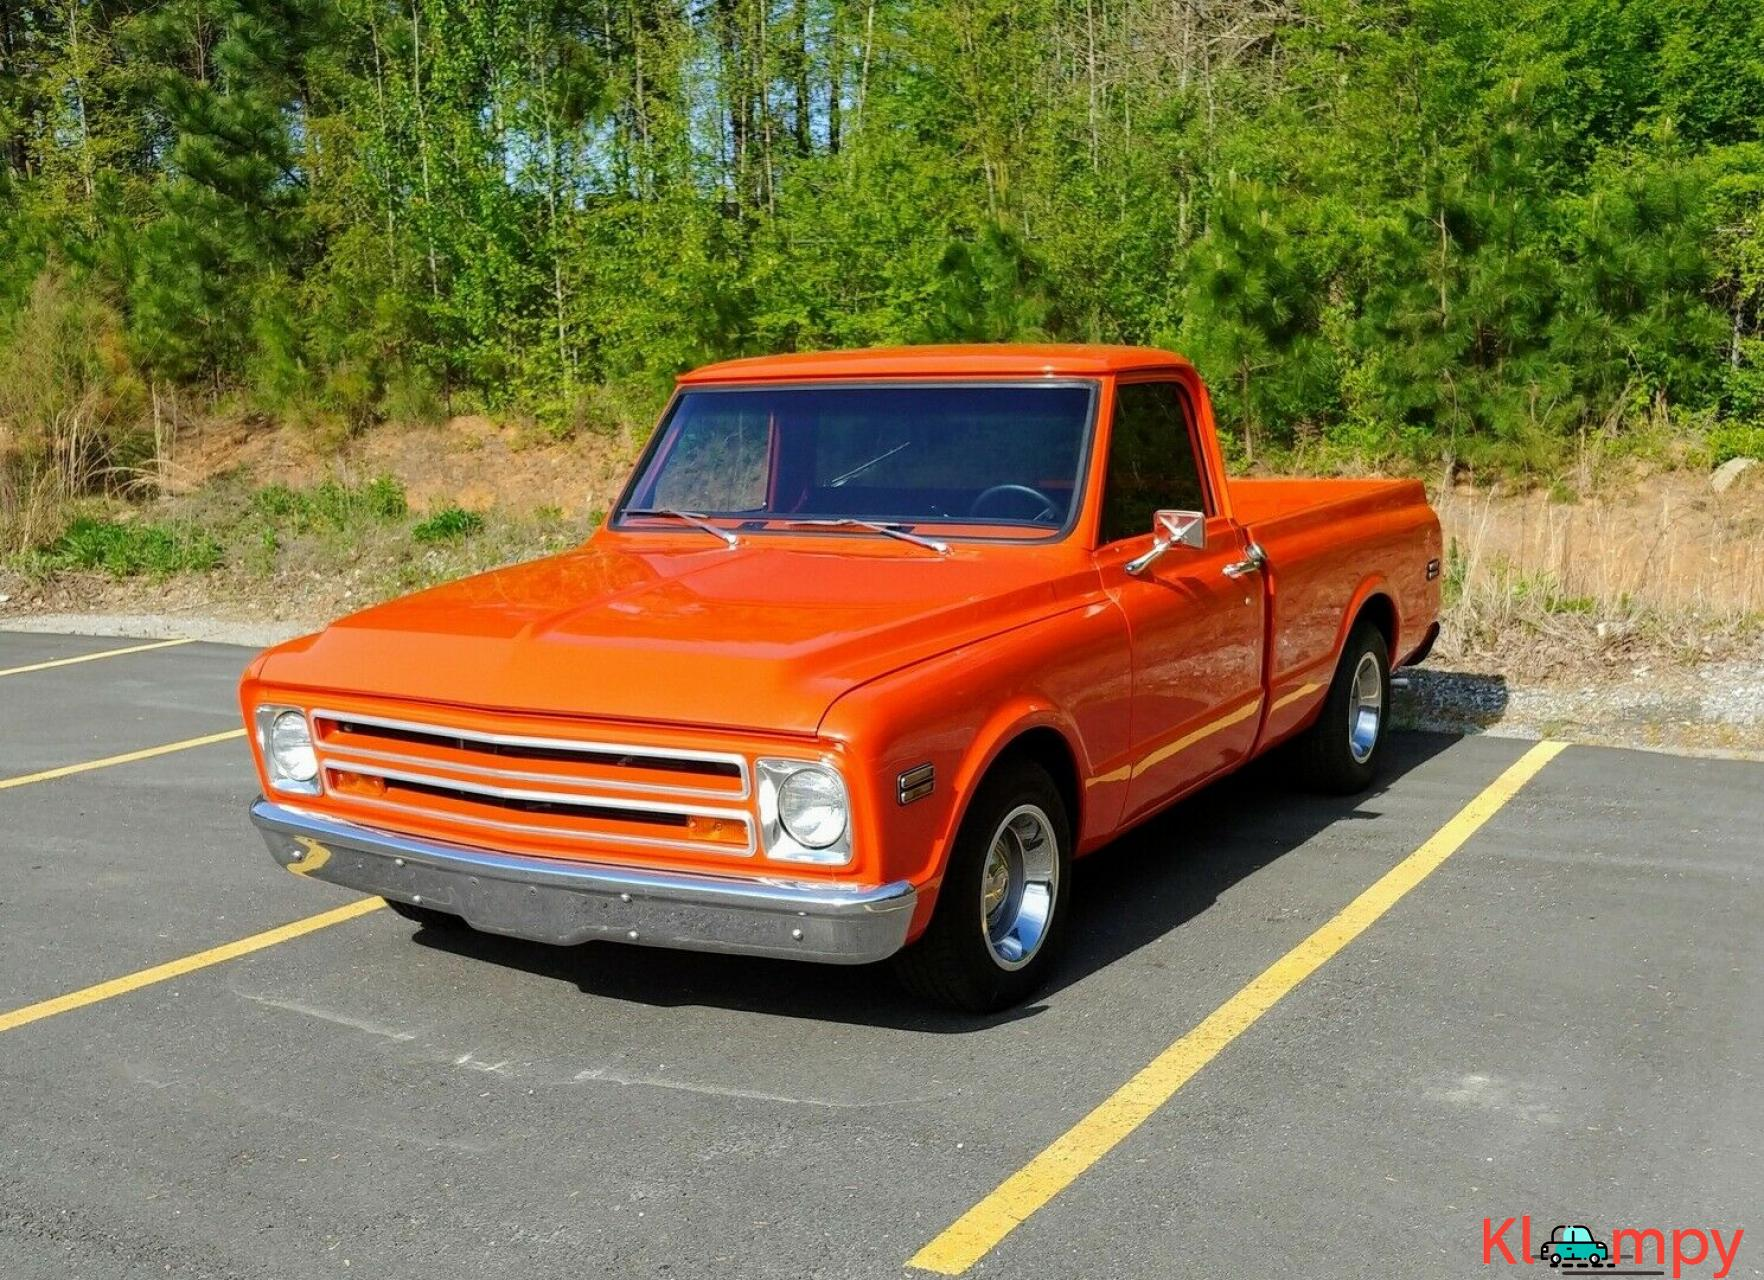 1968 Chevrolet Other Pickups C10 - 2/20